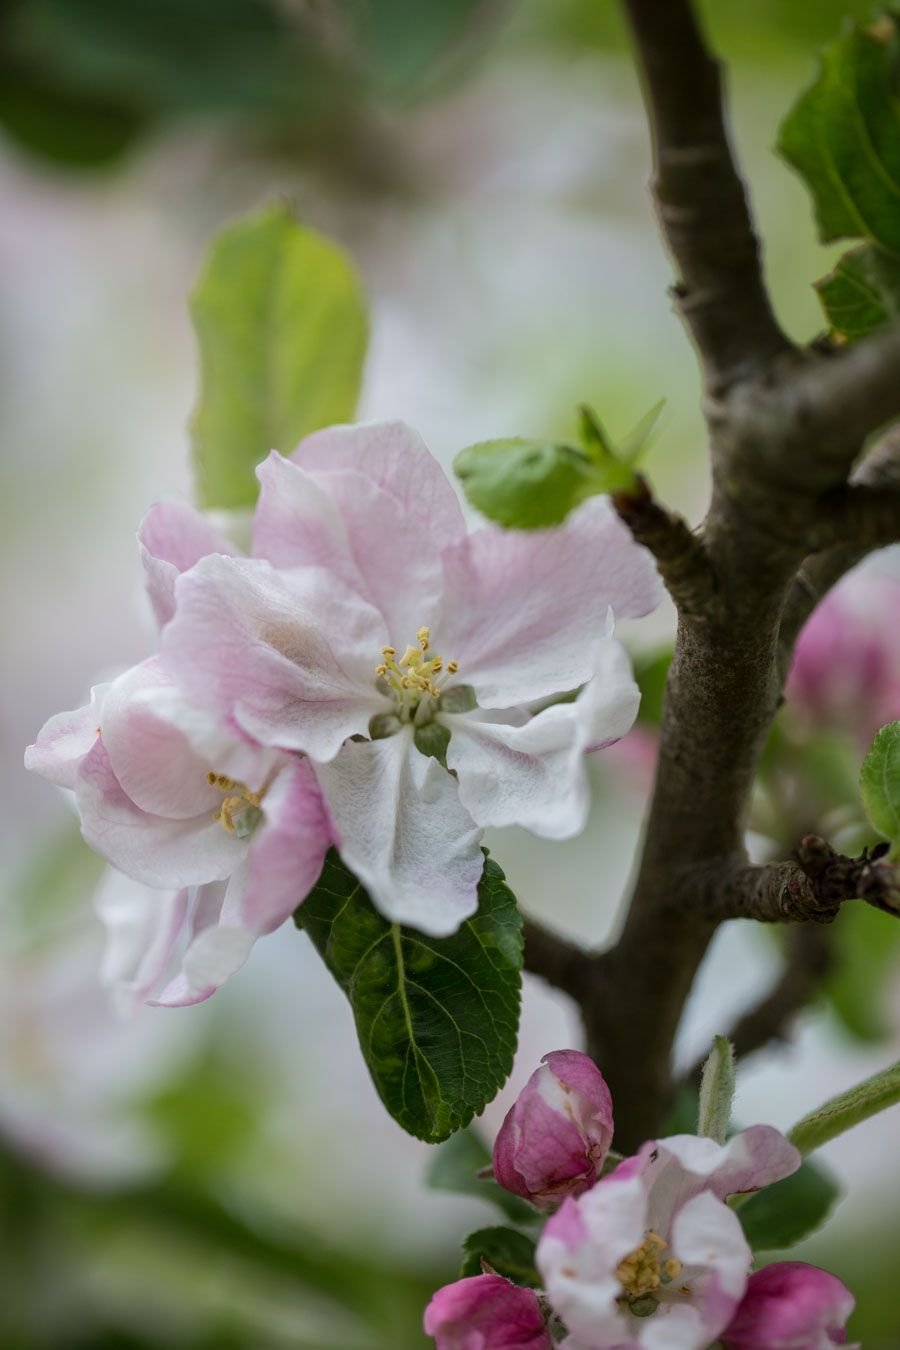 Best Things To See In Spring Apple Trees In Blossom Lobster And Swan Apple Blossom Flower Apricot Blossom Apple Tree